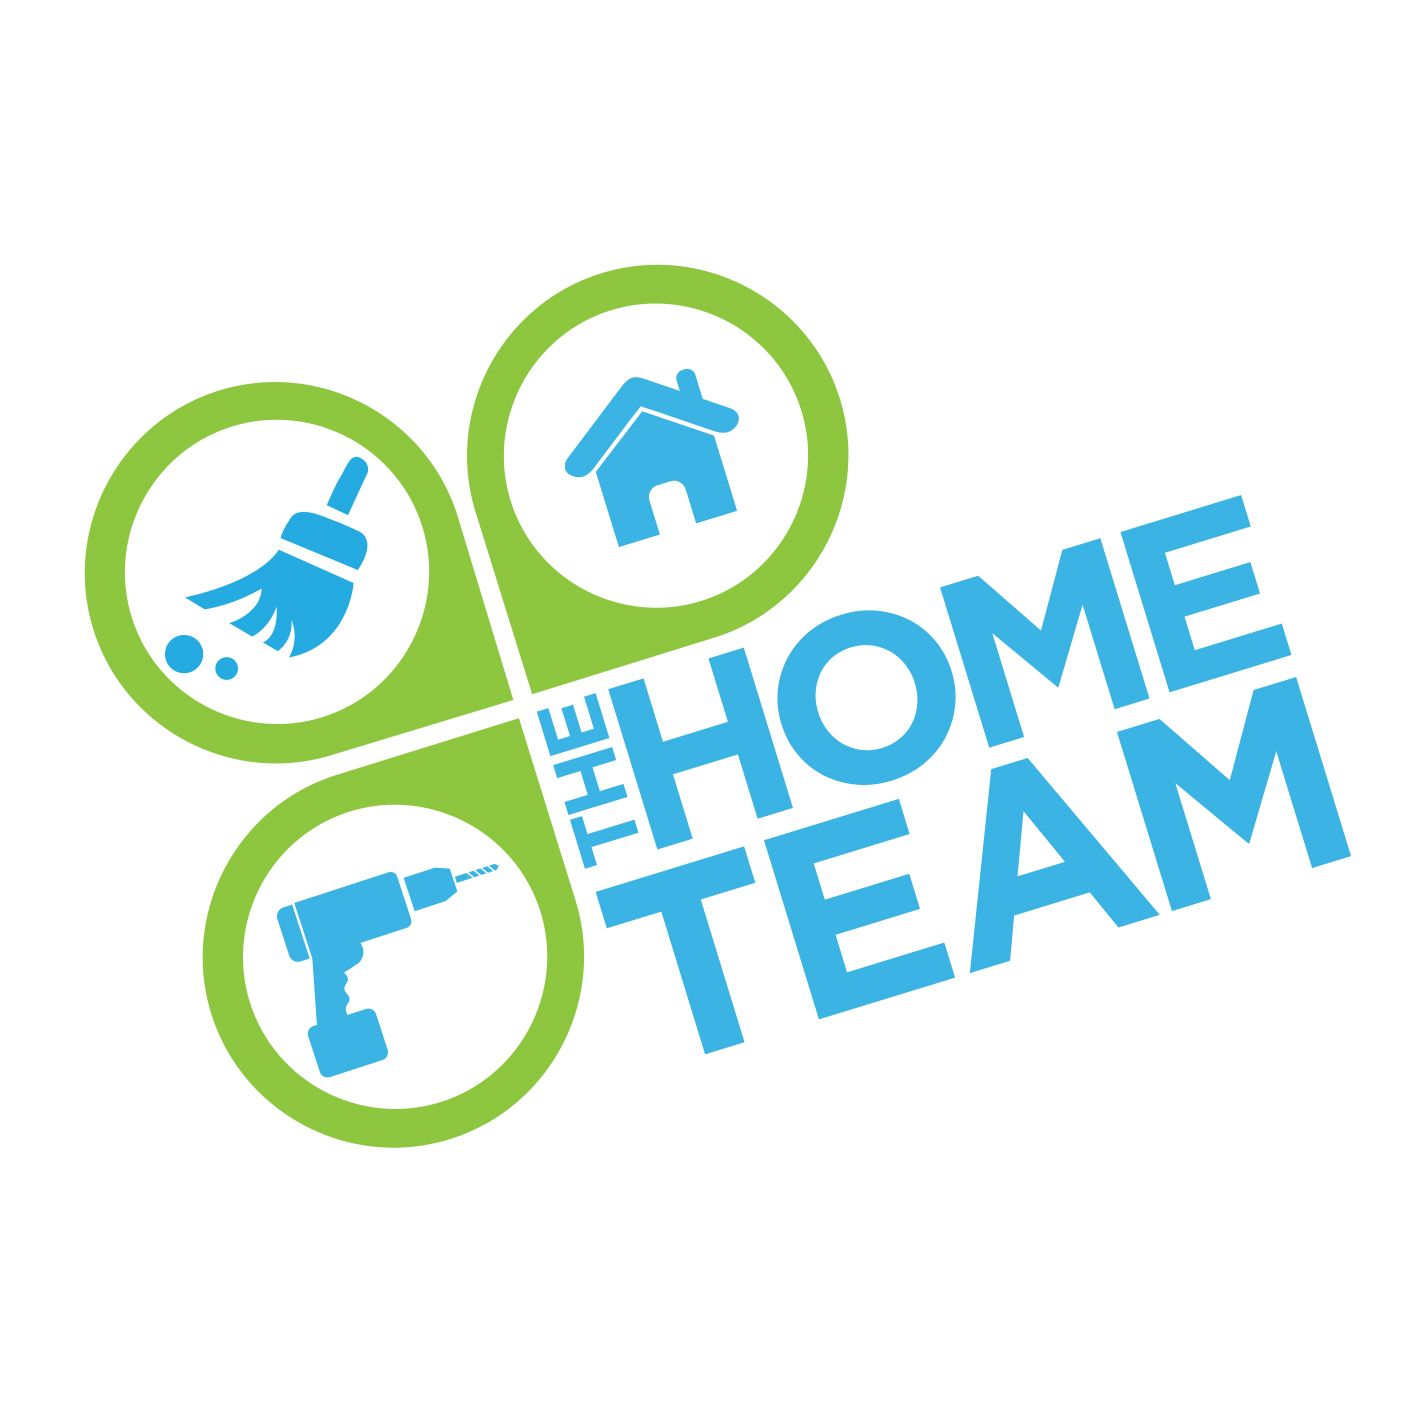 Cleaning services logo google search cleaning services for Household design company